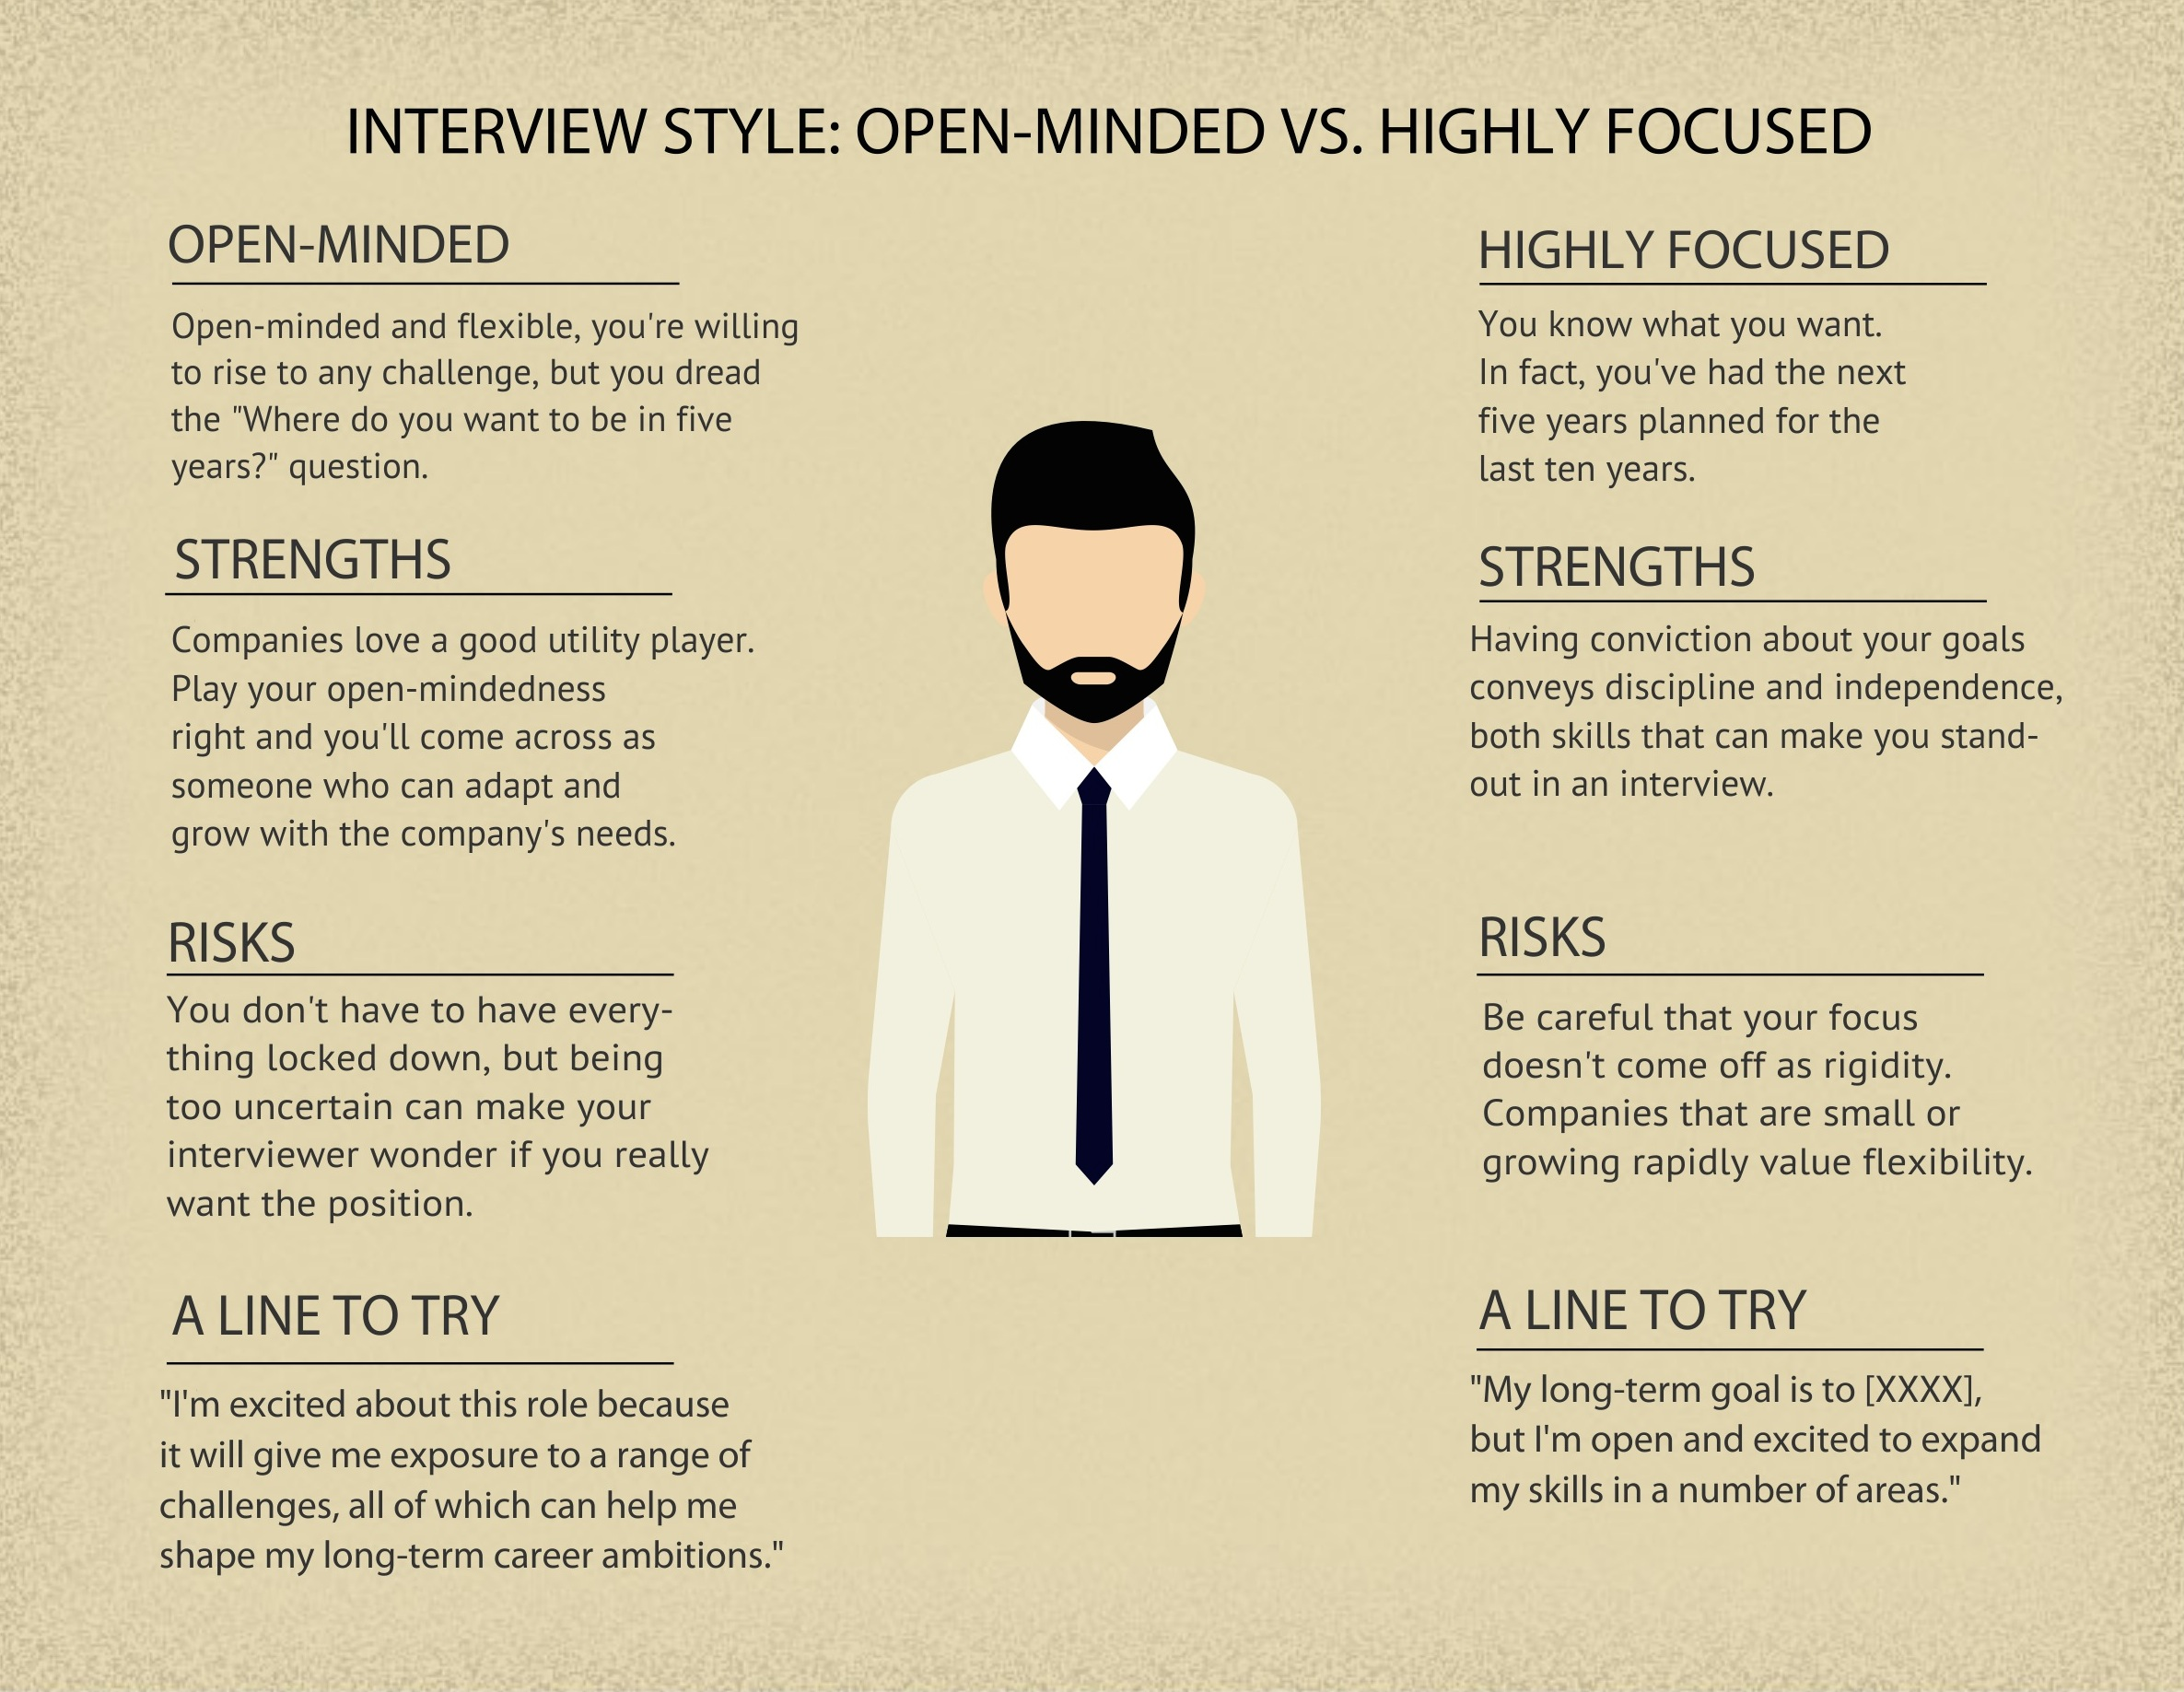 InterviewStyleOpenvsFocused